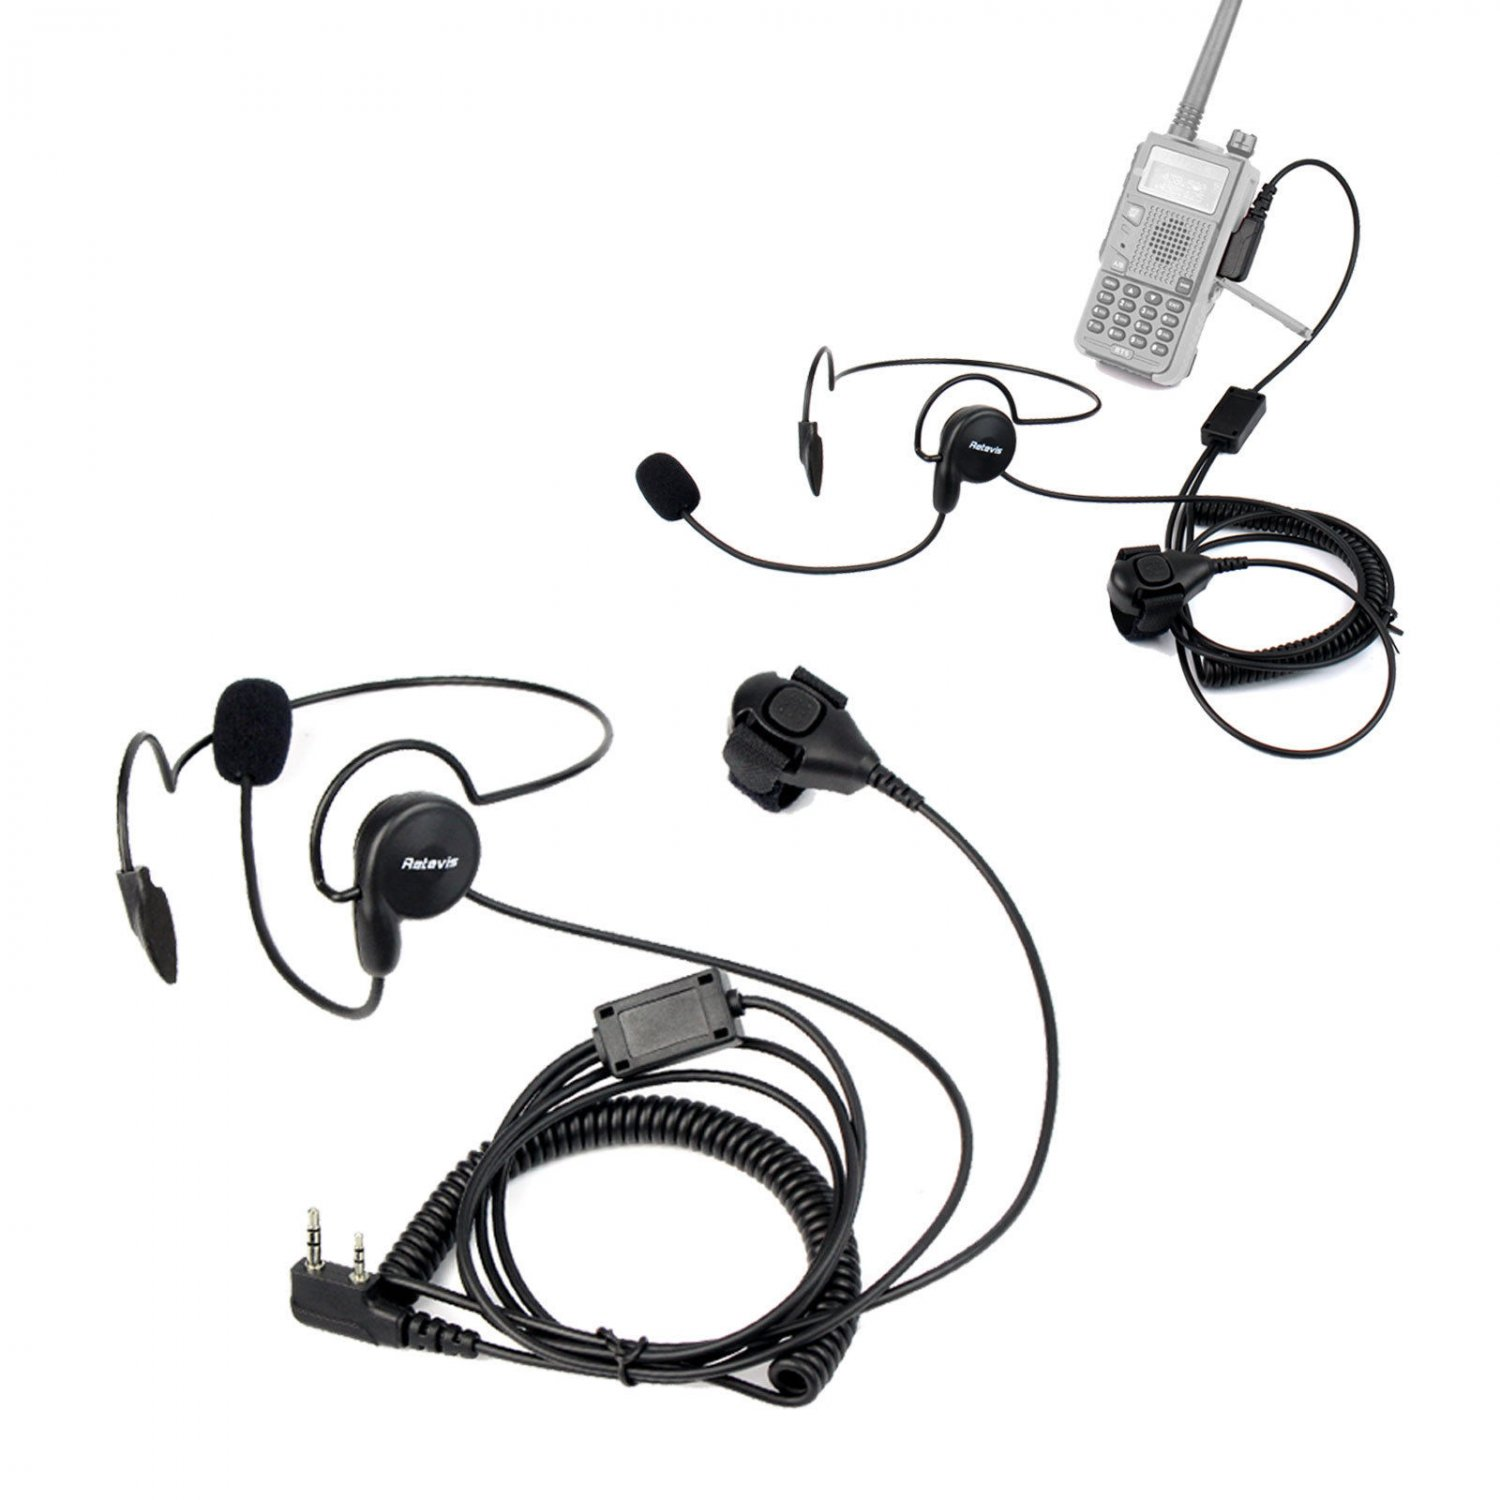 2x Finger Ptt Headset Earpiece Mic For Retevis H777 Rt 5r